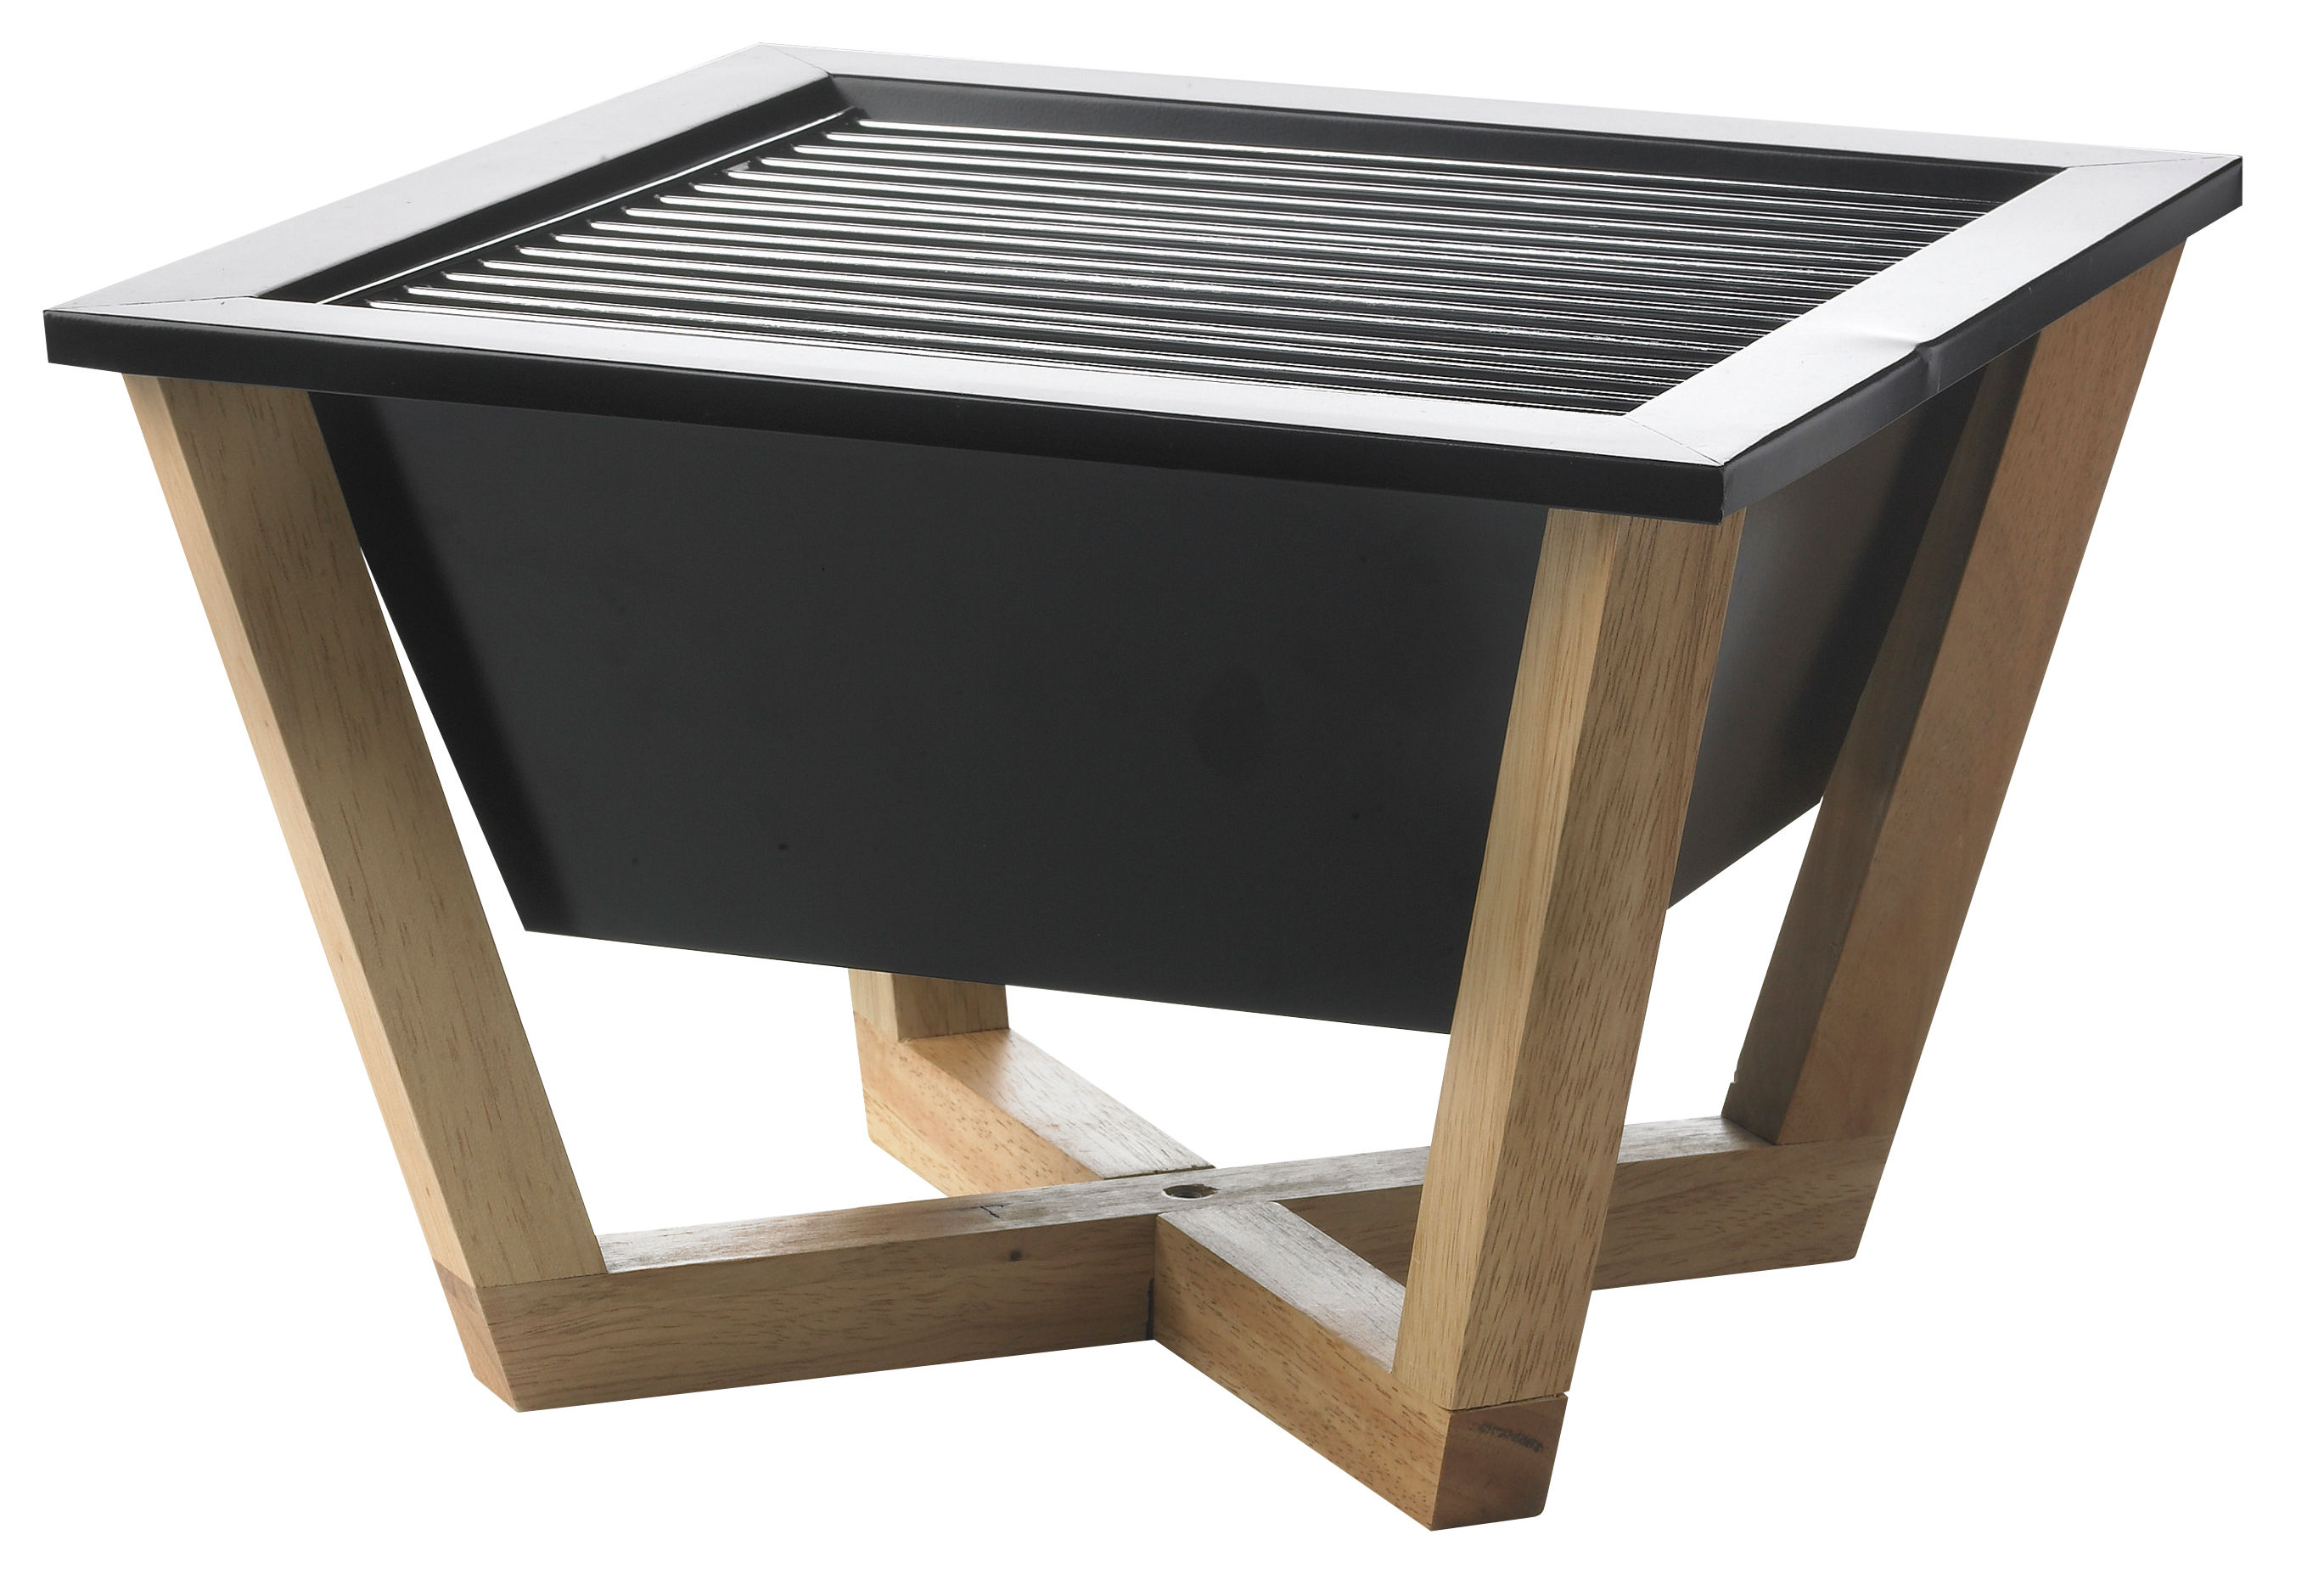 Outdoor - Barbecues & Charcoal Grills - Nido Movable charcoal barbecue - 35 x 35 cm by XD DESIGN - Black - Carbon steel, Wood